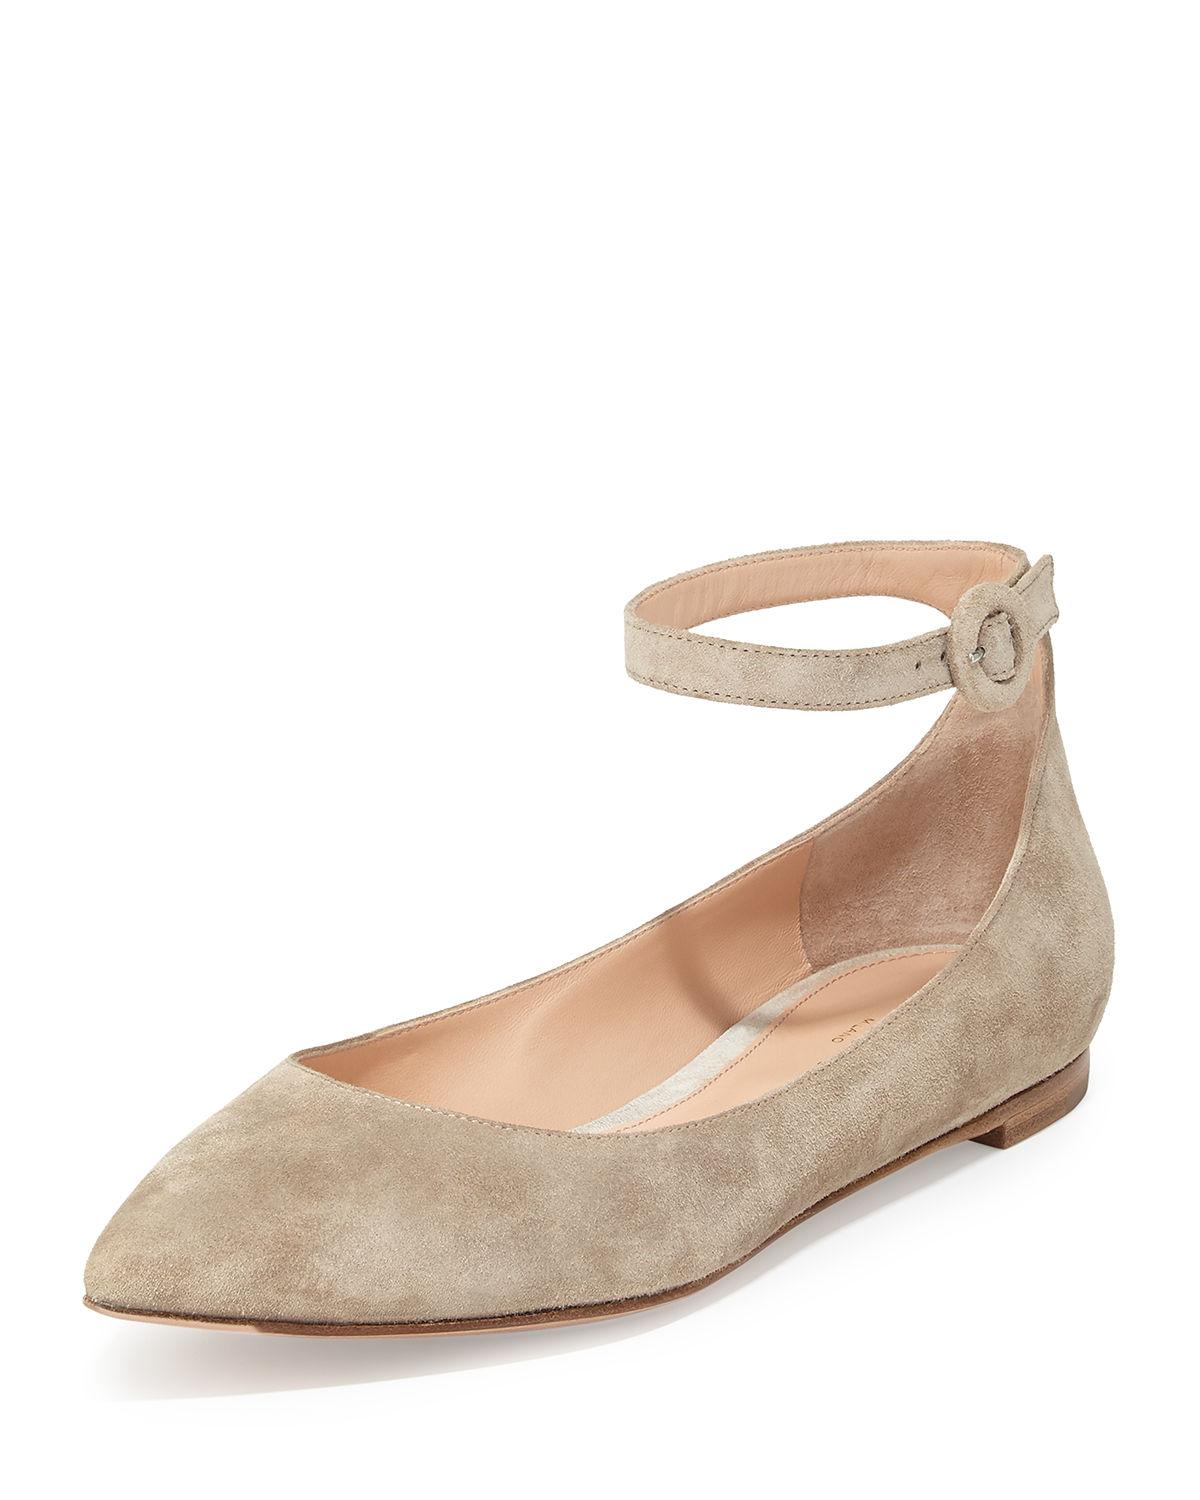 Gianvito Rossi Suede Ankle-wrap Skimmer Flat In Brown Light